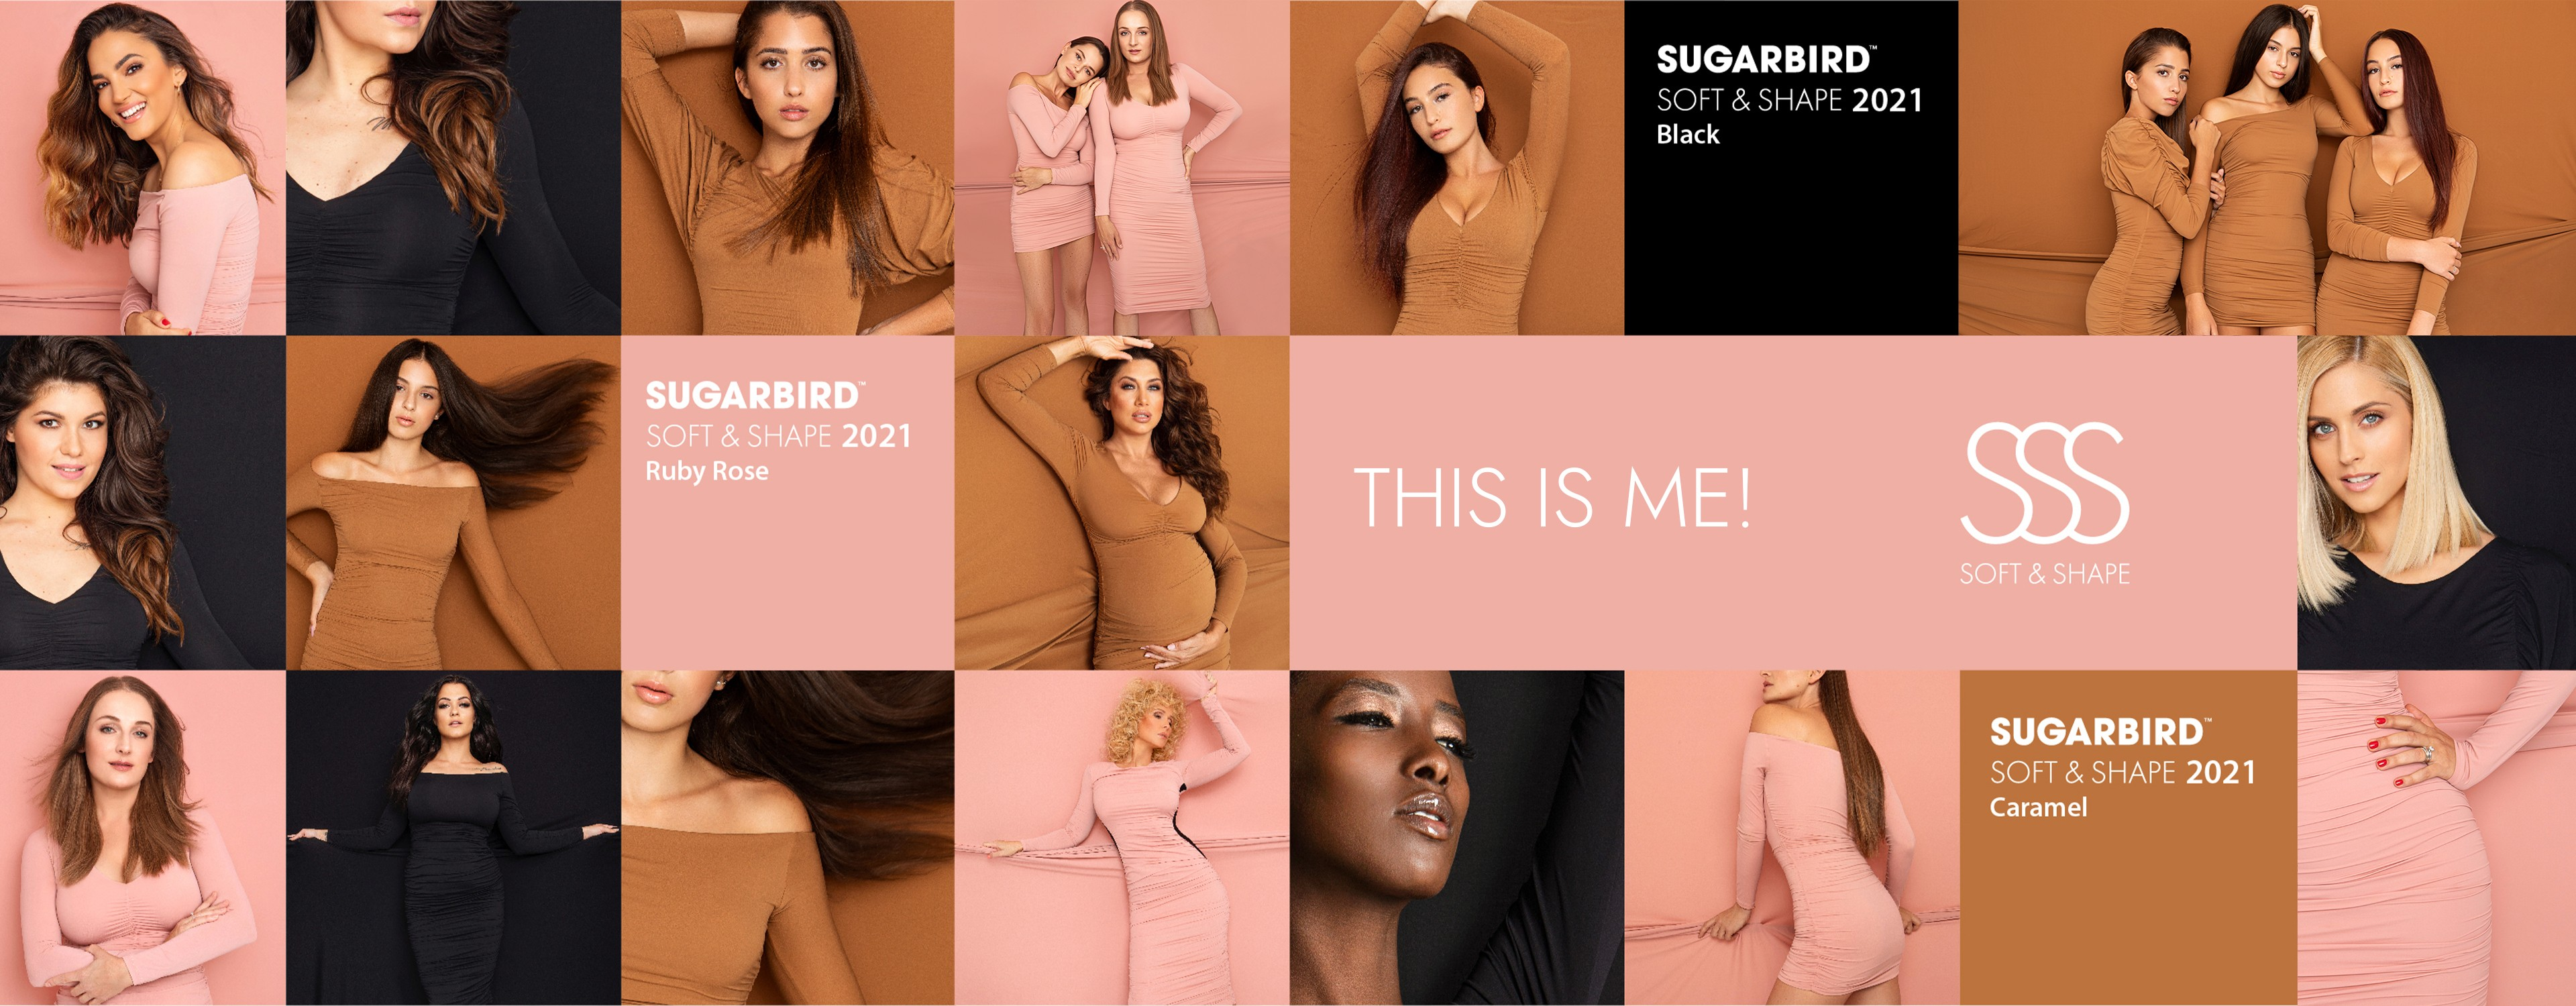 SOFT & SHAPE COLLECTION